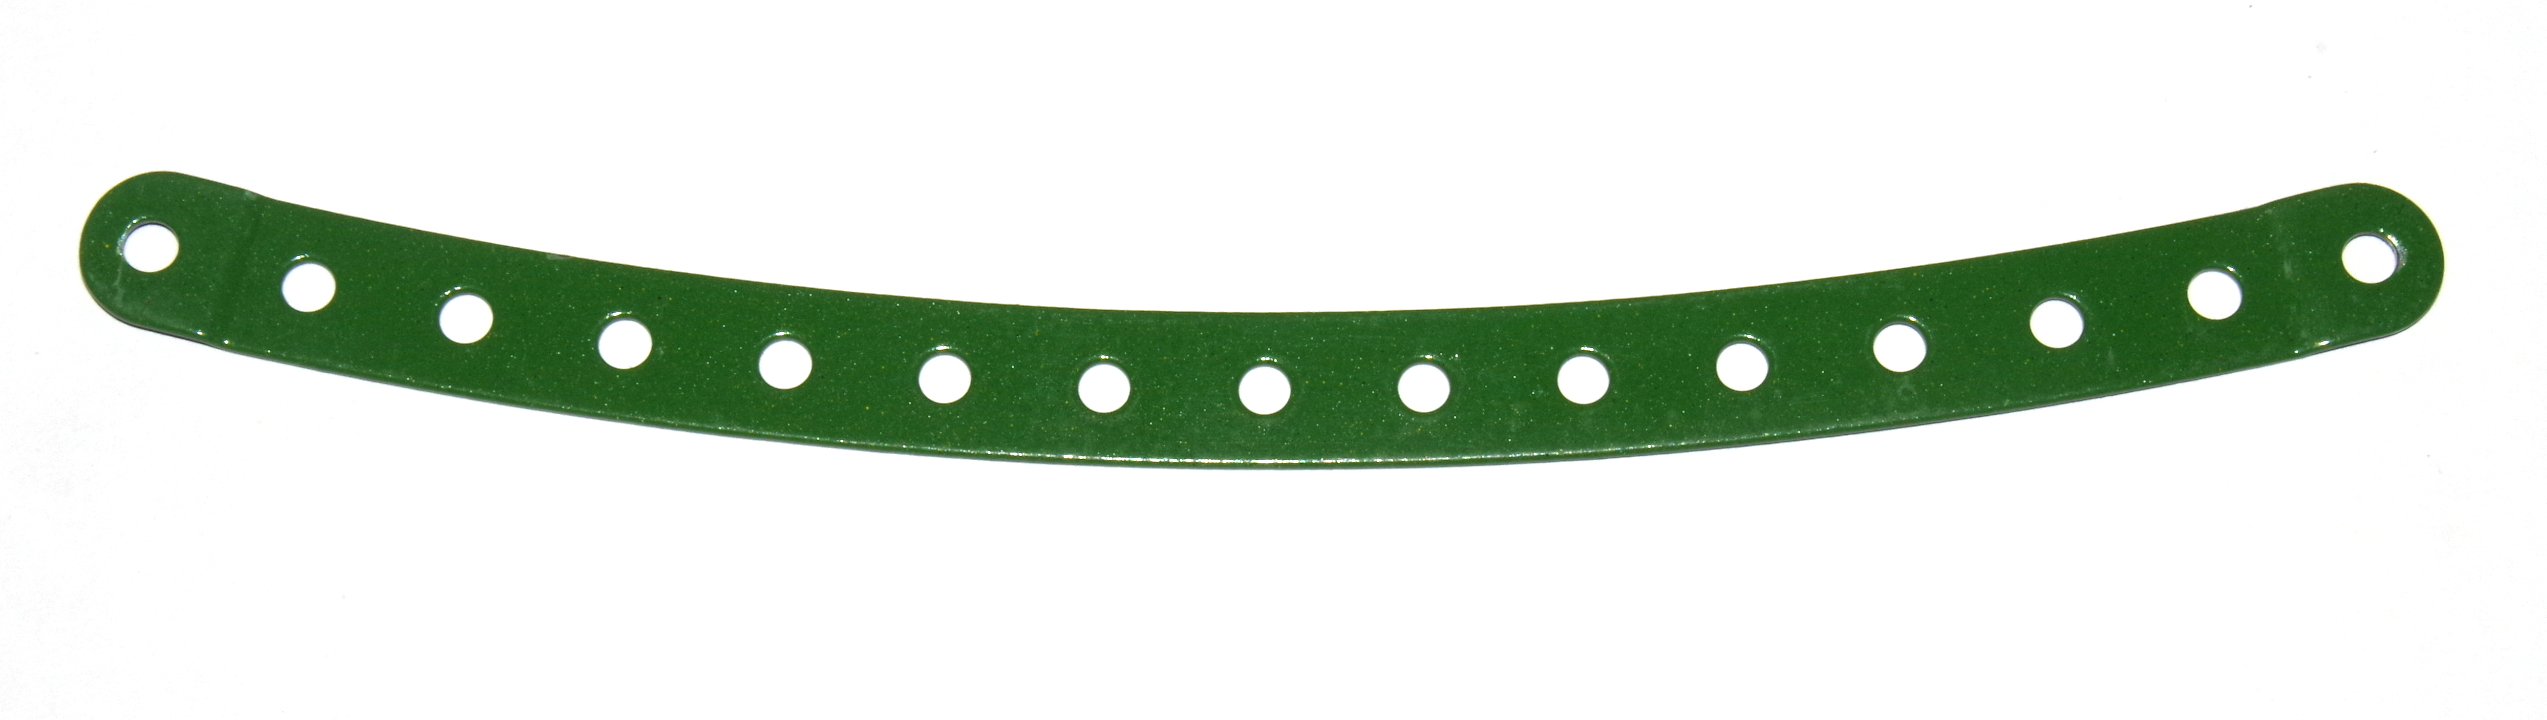 89d Curved Strip 15 Hole Stepped Green